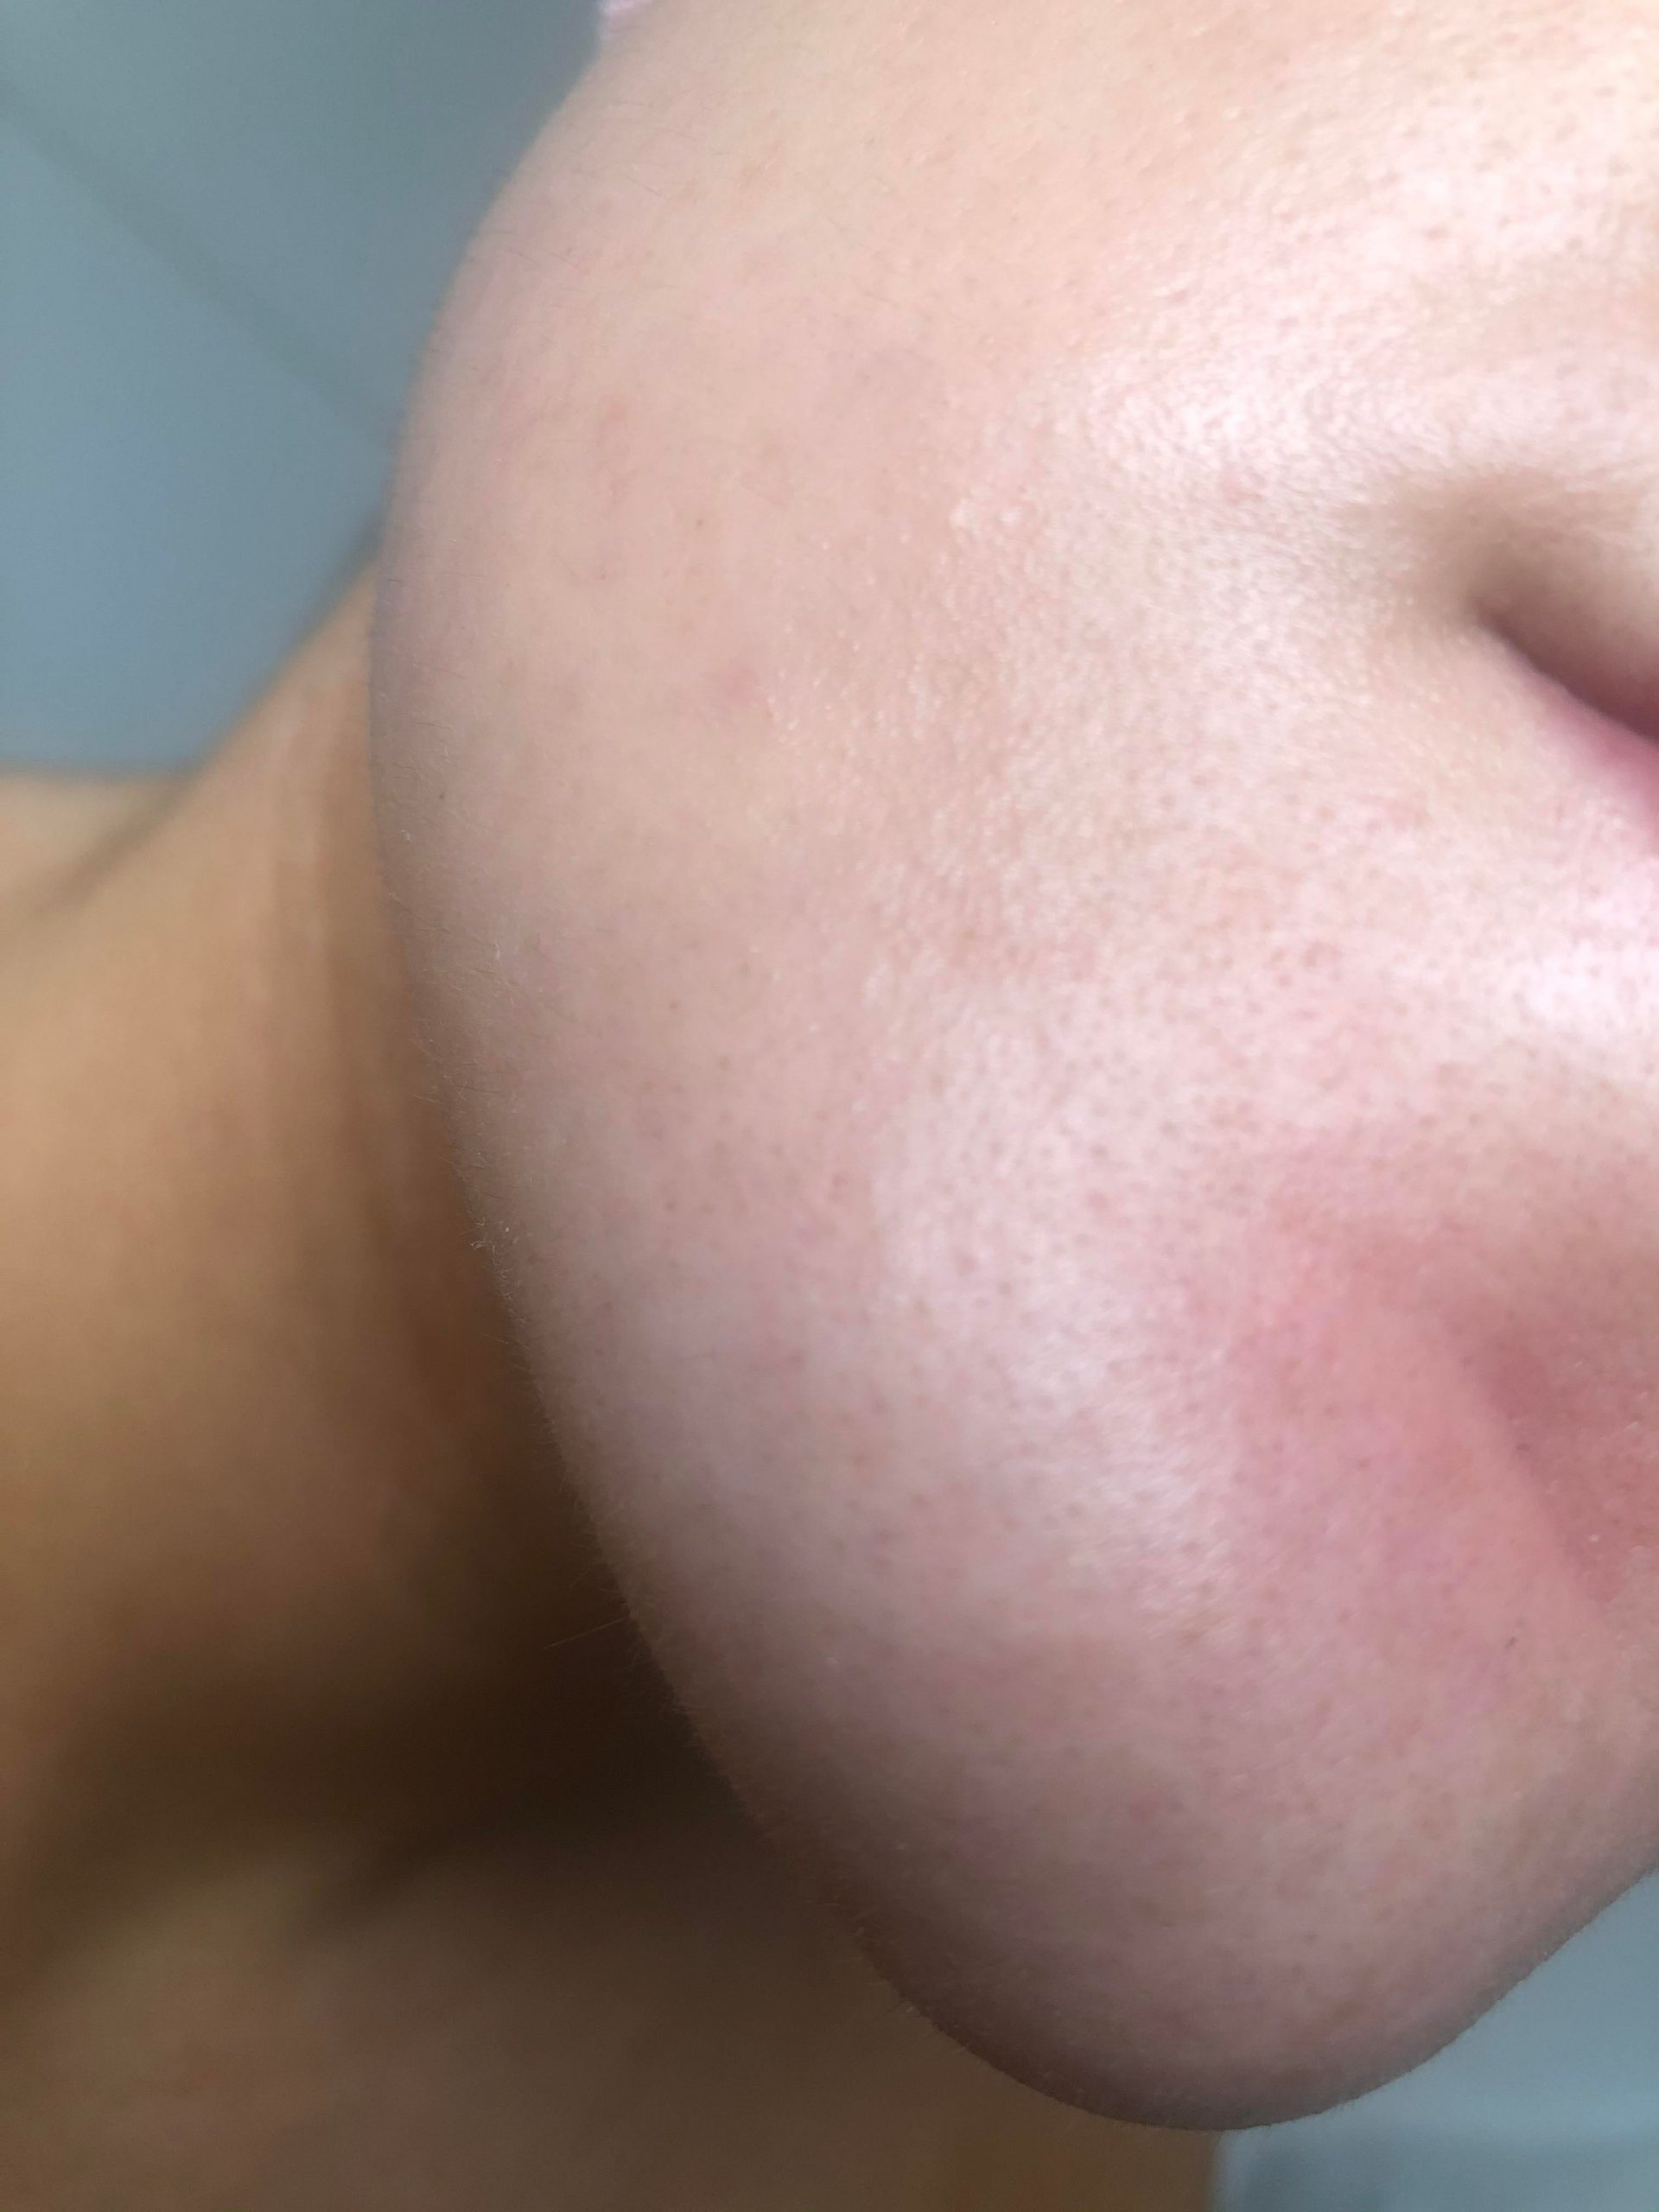 [skin concern] how do I get rid of these tiny bumps all over my chin/what are they?? (Picture doesn't show them very well) Please help. I recently added Azelaic acid to help with my textural issues but it's made these bumps worse